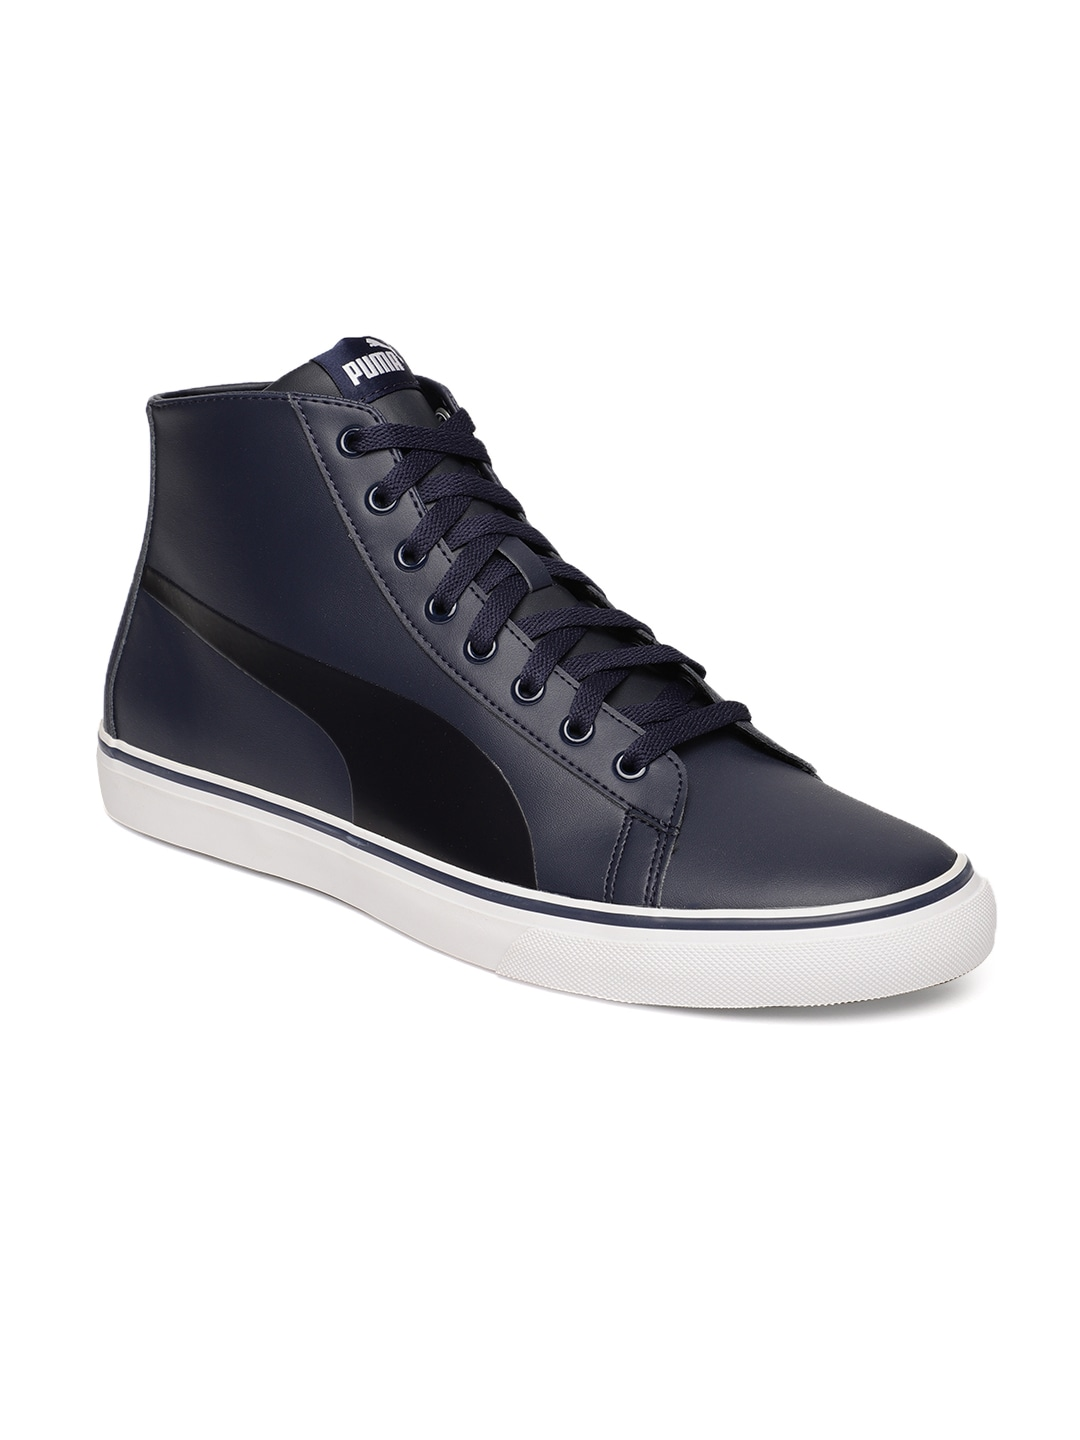 cfeed6f5c9f438 Sneakers Online - Buy Sneakers for Men   Women - Myntra